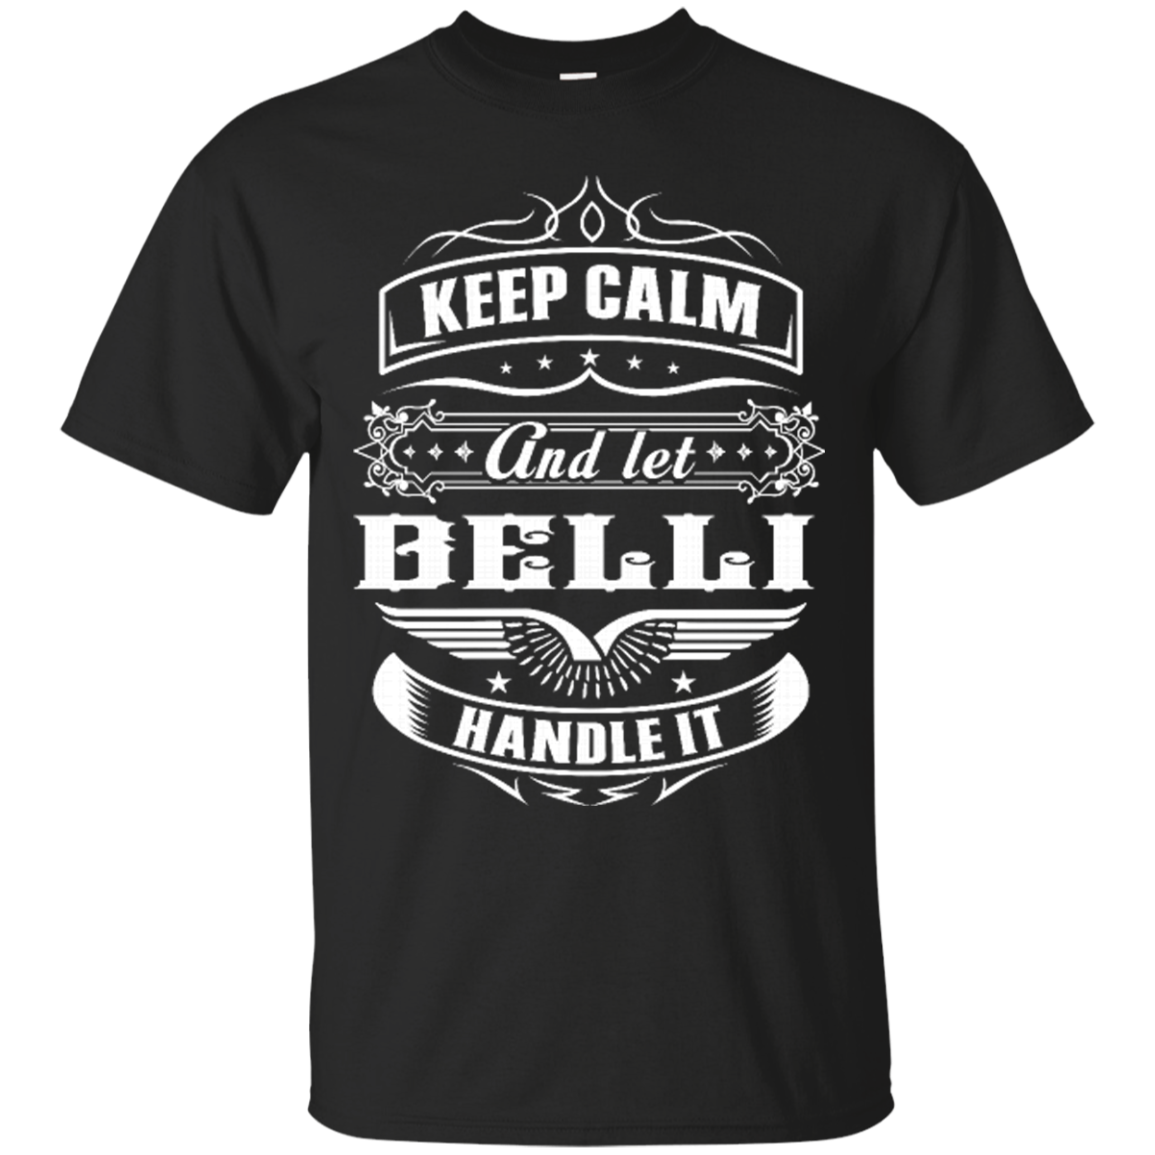 Belli Shirts Keep Calm & Let Belli Handle It